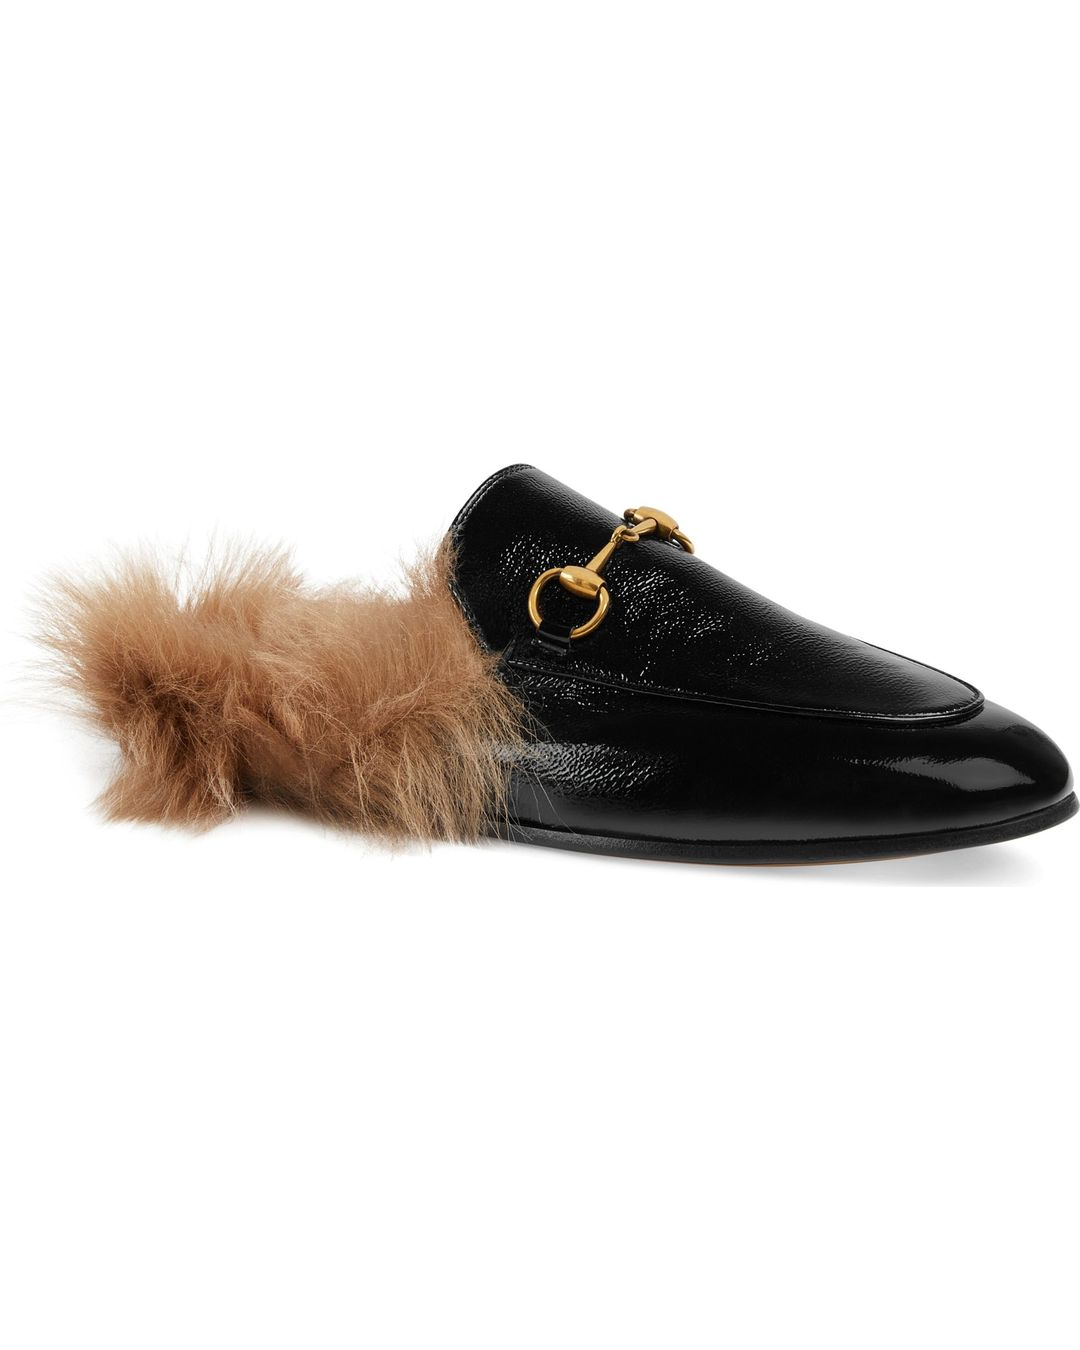 0e15a8a75668 Gucci Princetown Wool Loafer Reviews and Sizing – Only Best Shoes